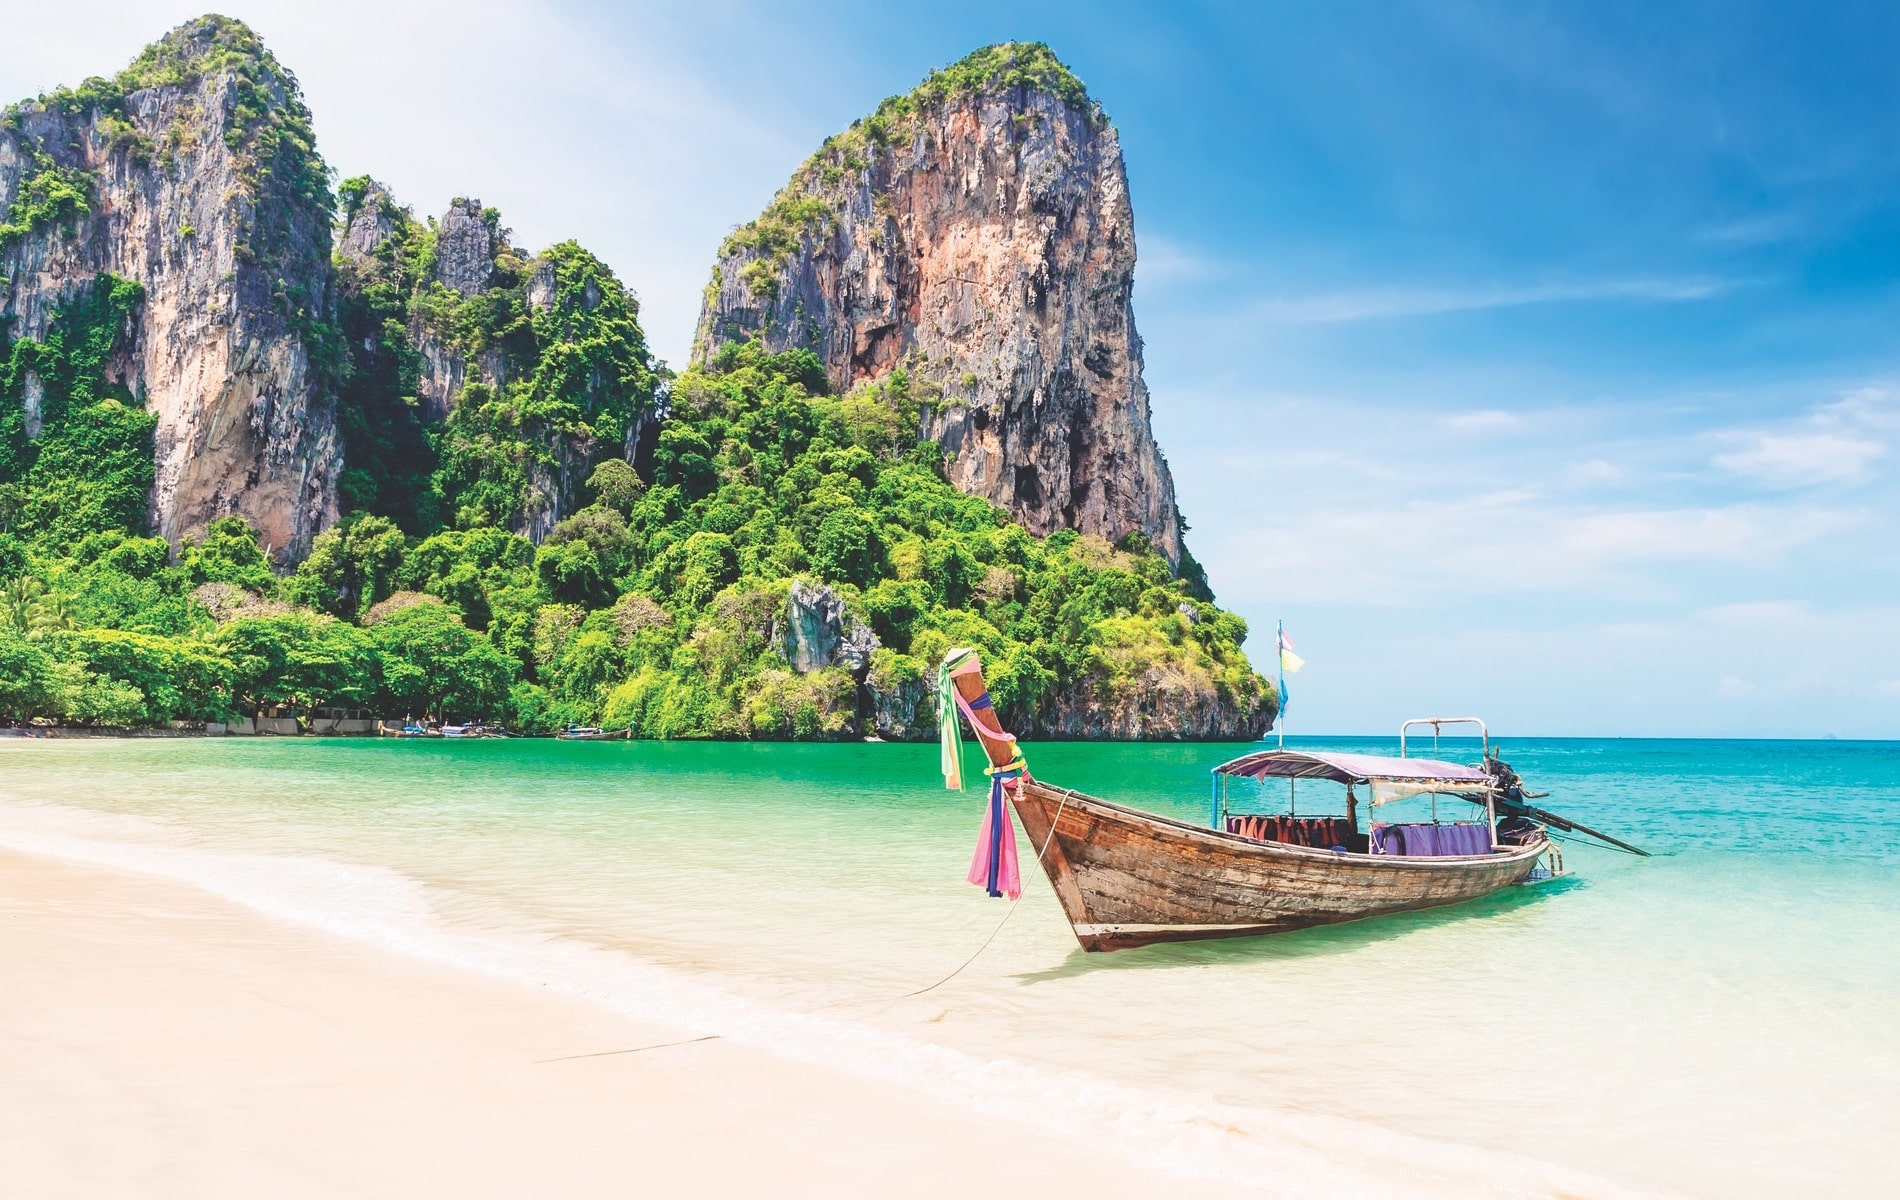 Krabi province in Thailand is one of our top picks for the most beautiful places in the world